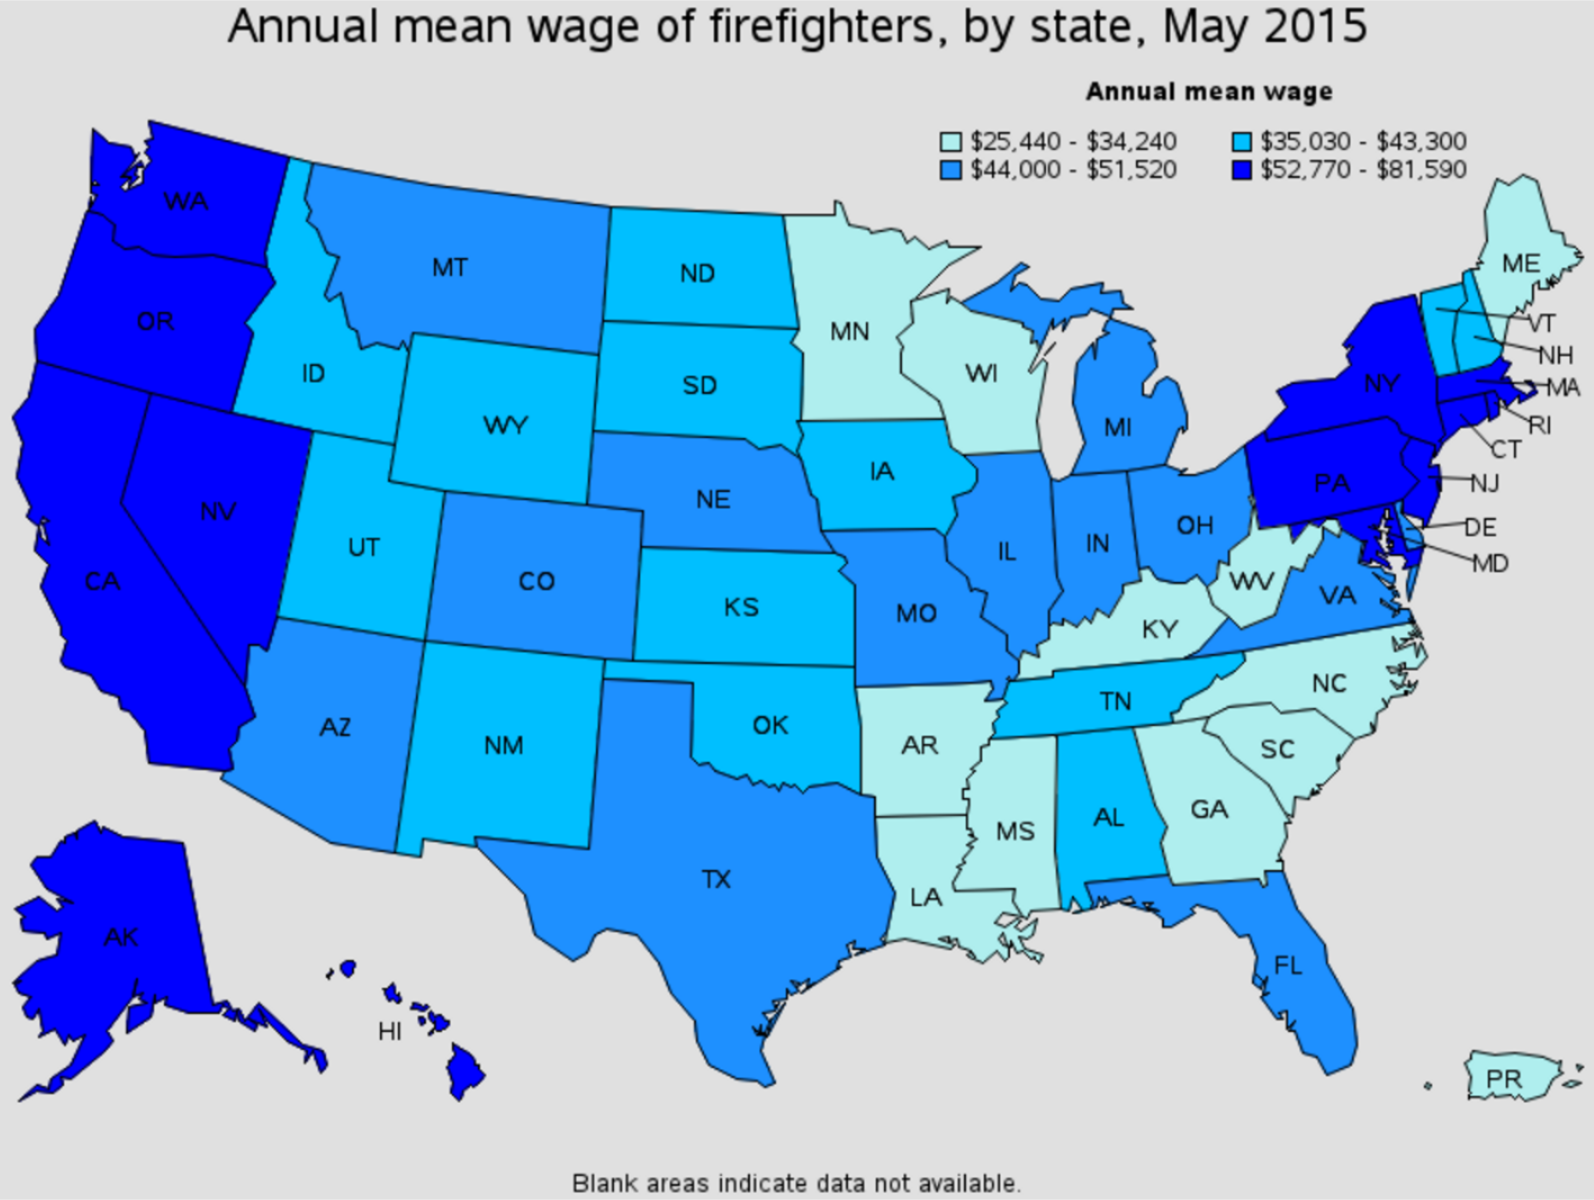 firefighter average salary by state Wolverine Michigan